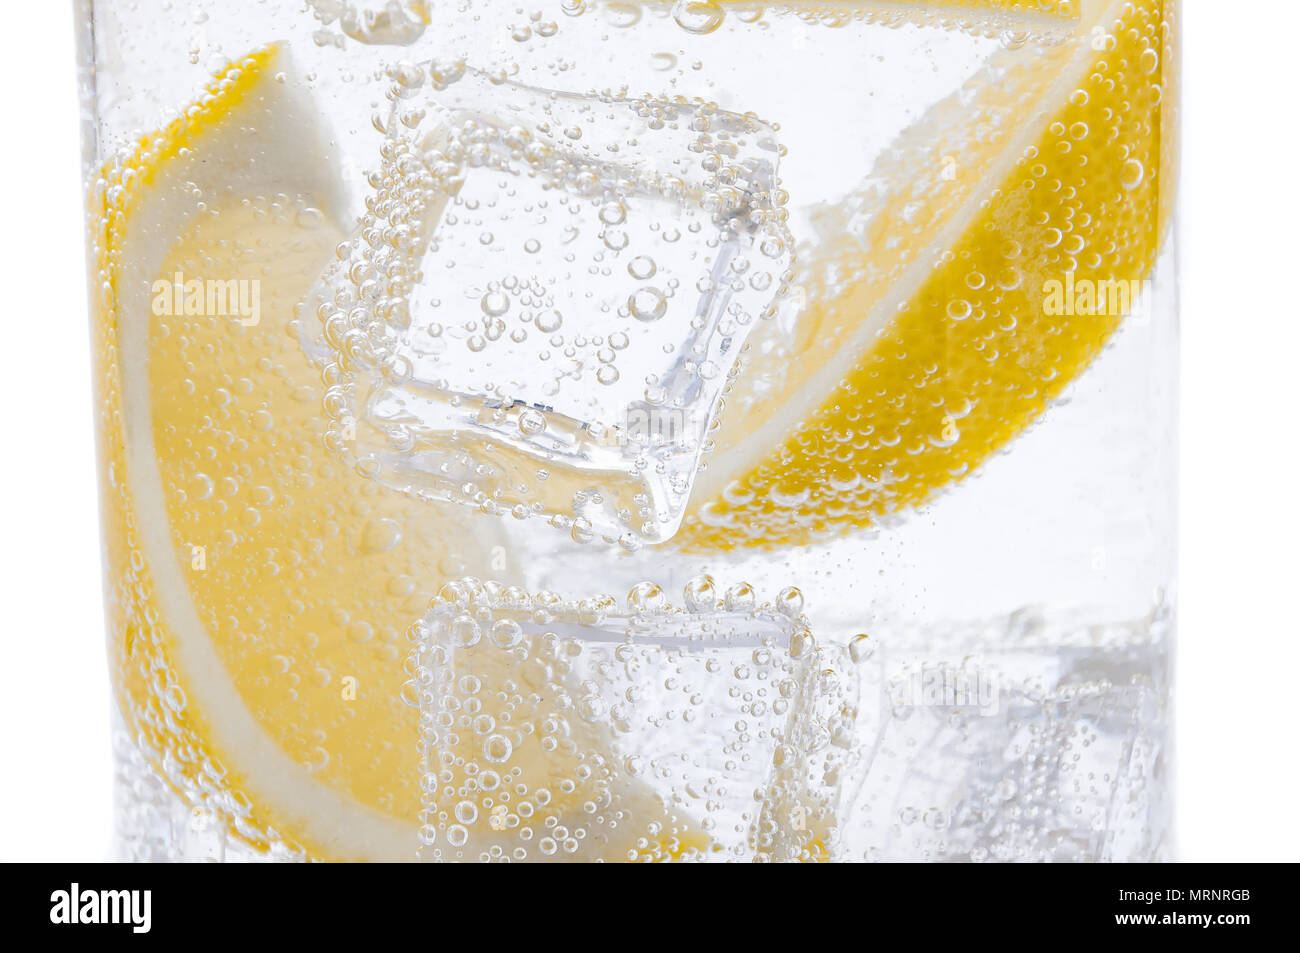 Slices of fresh juicy yellow lemon with ice in water. - Stock Image